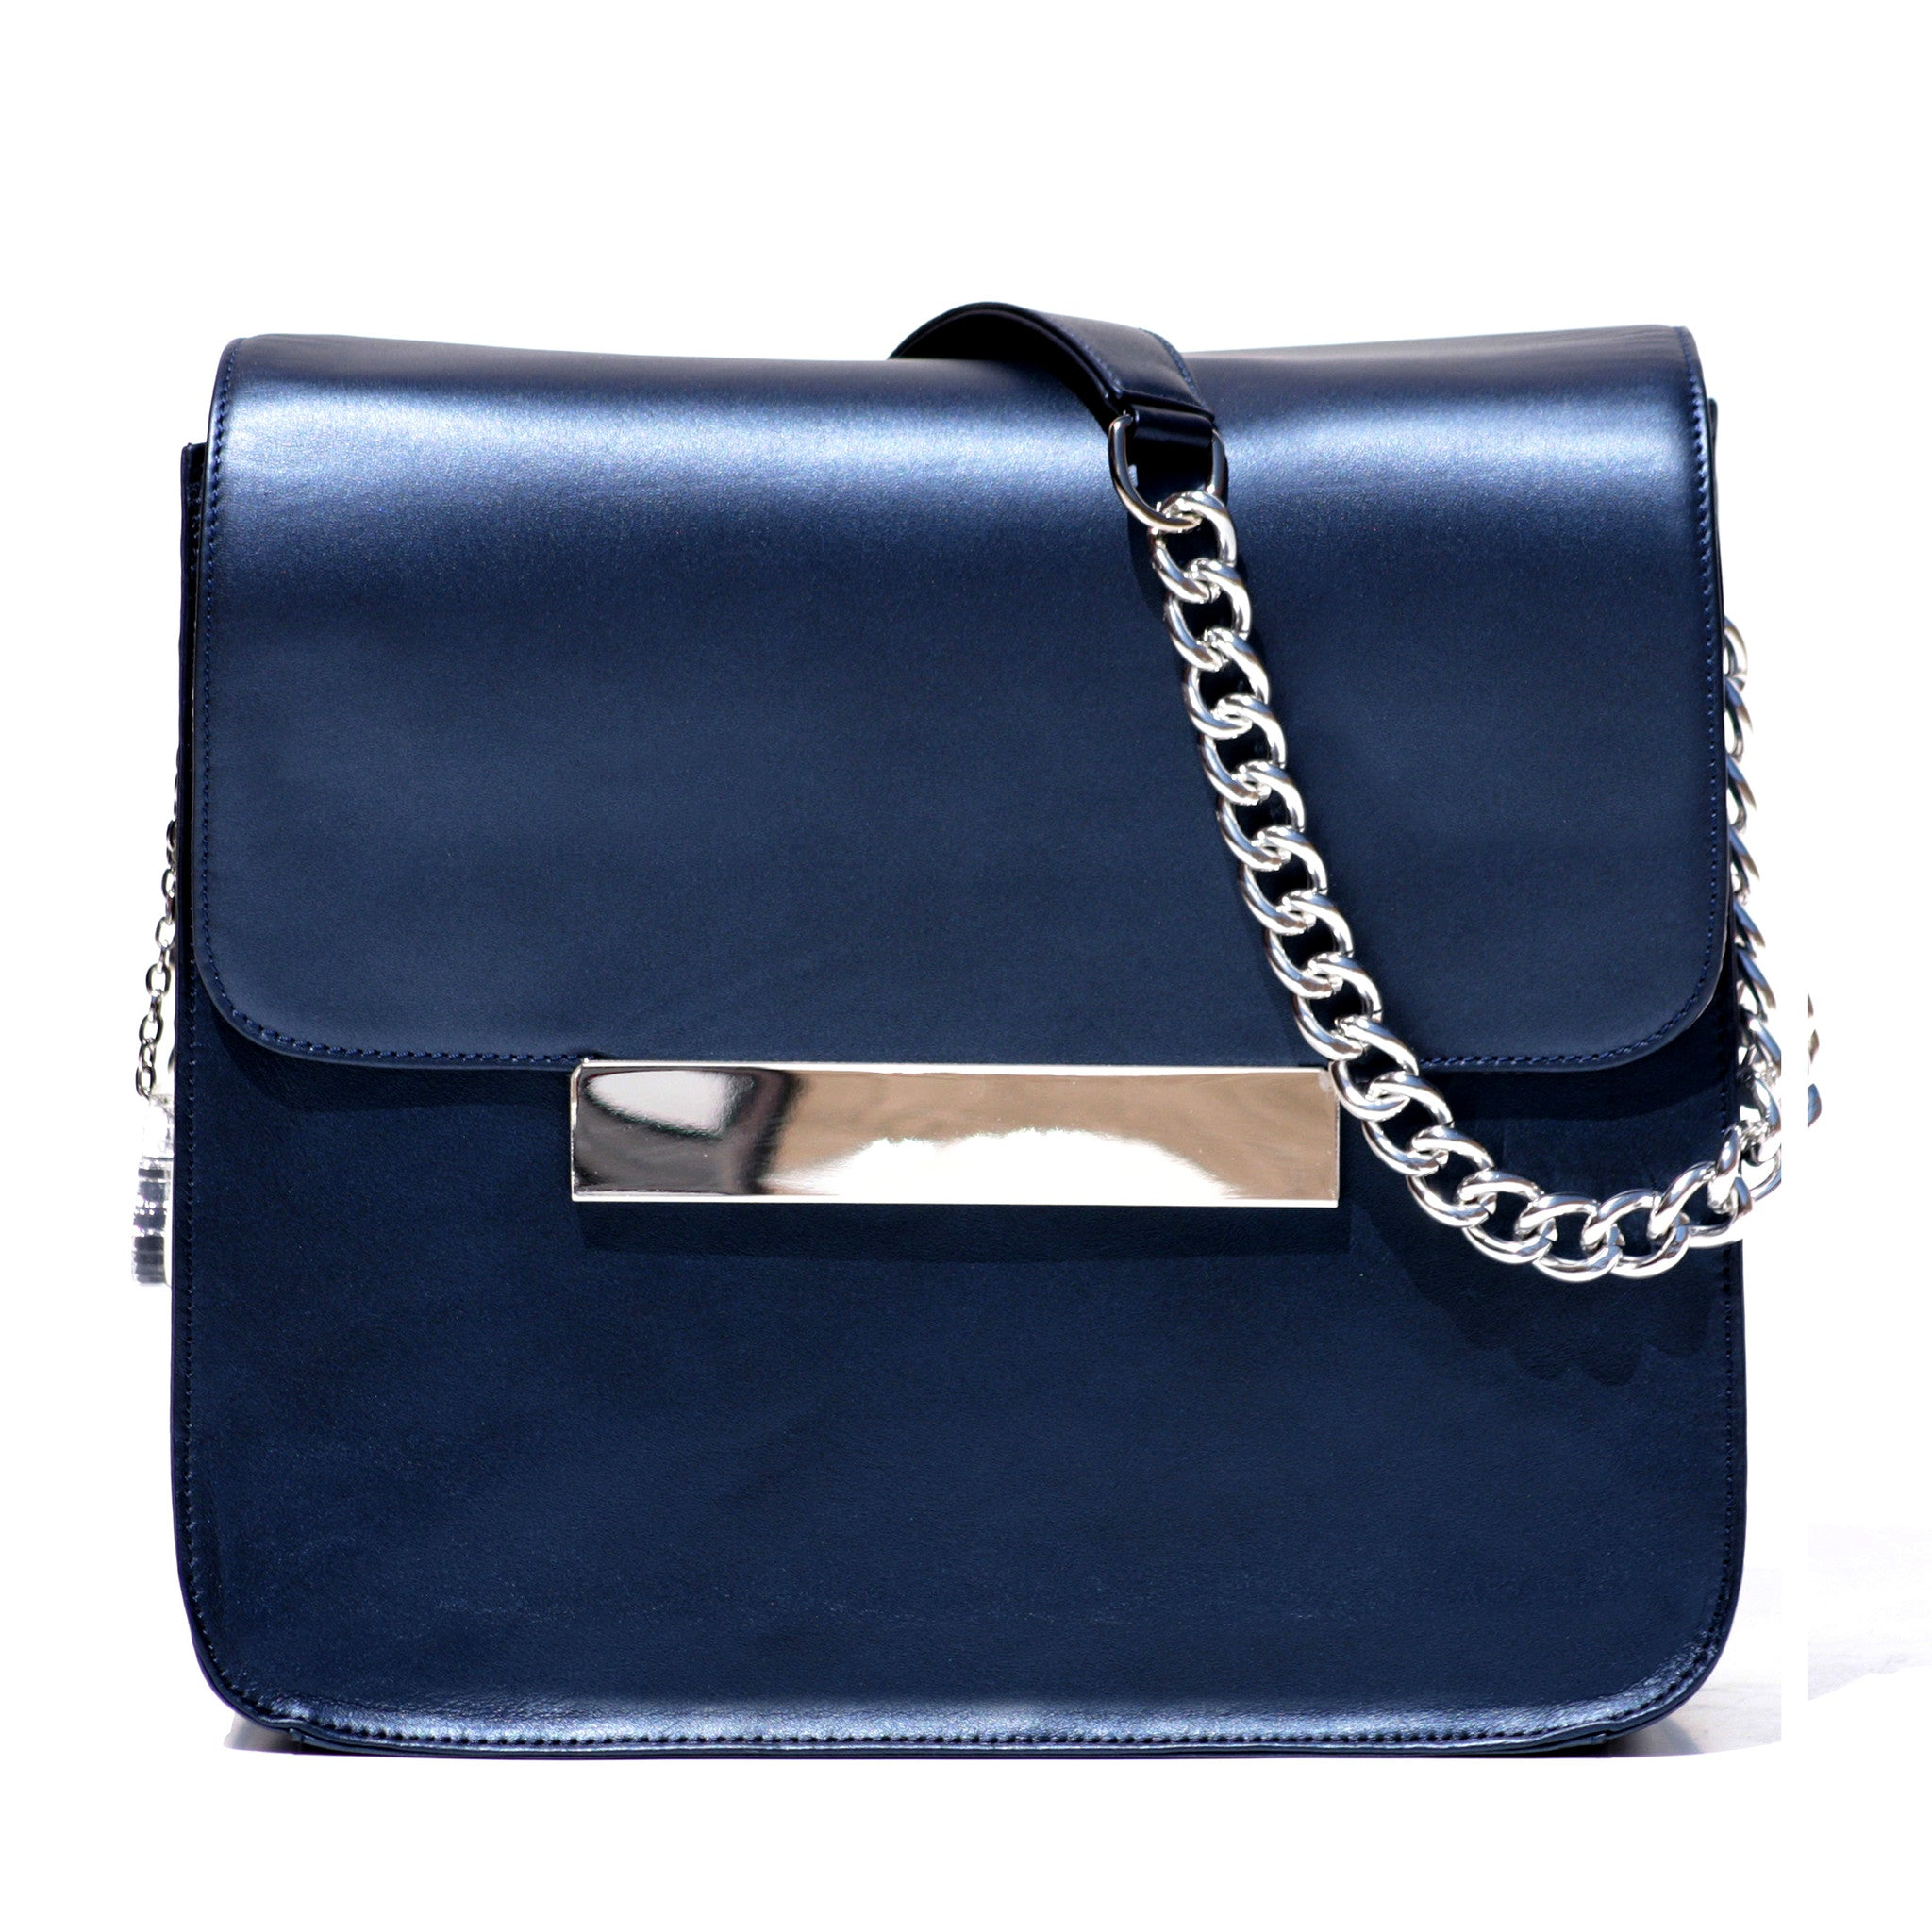 COBALT BLUE NAPA LEATHER CROSS-BODY BAG